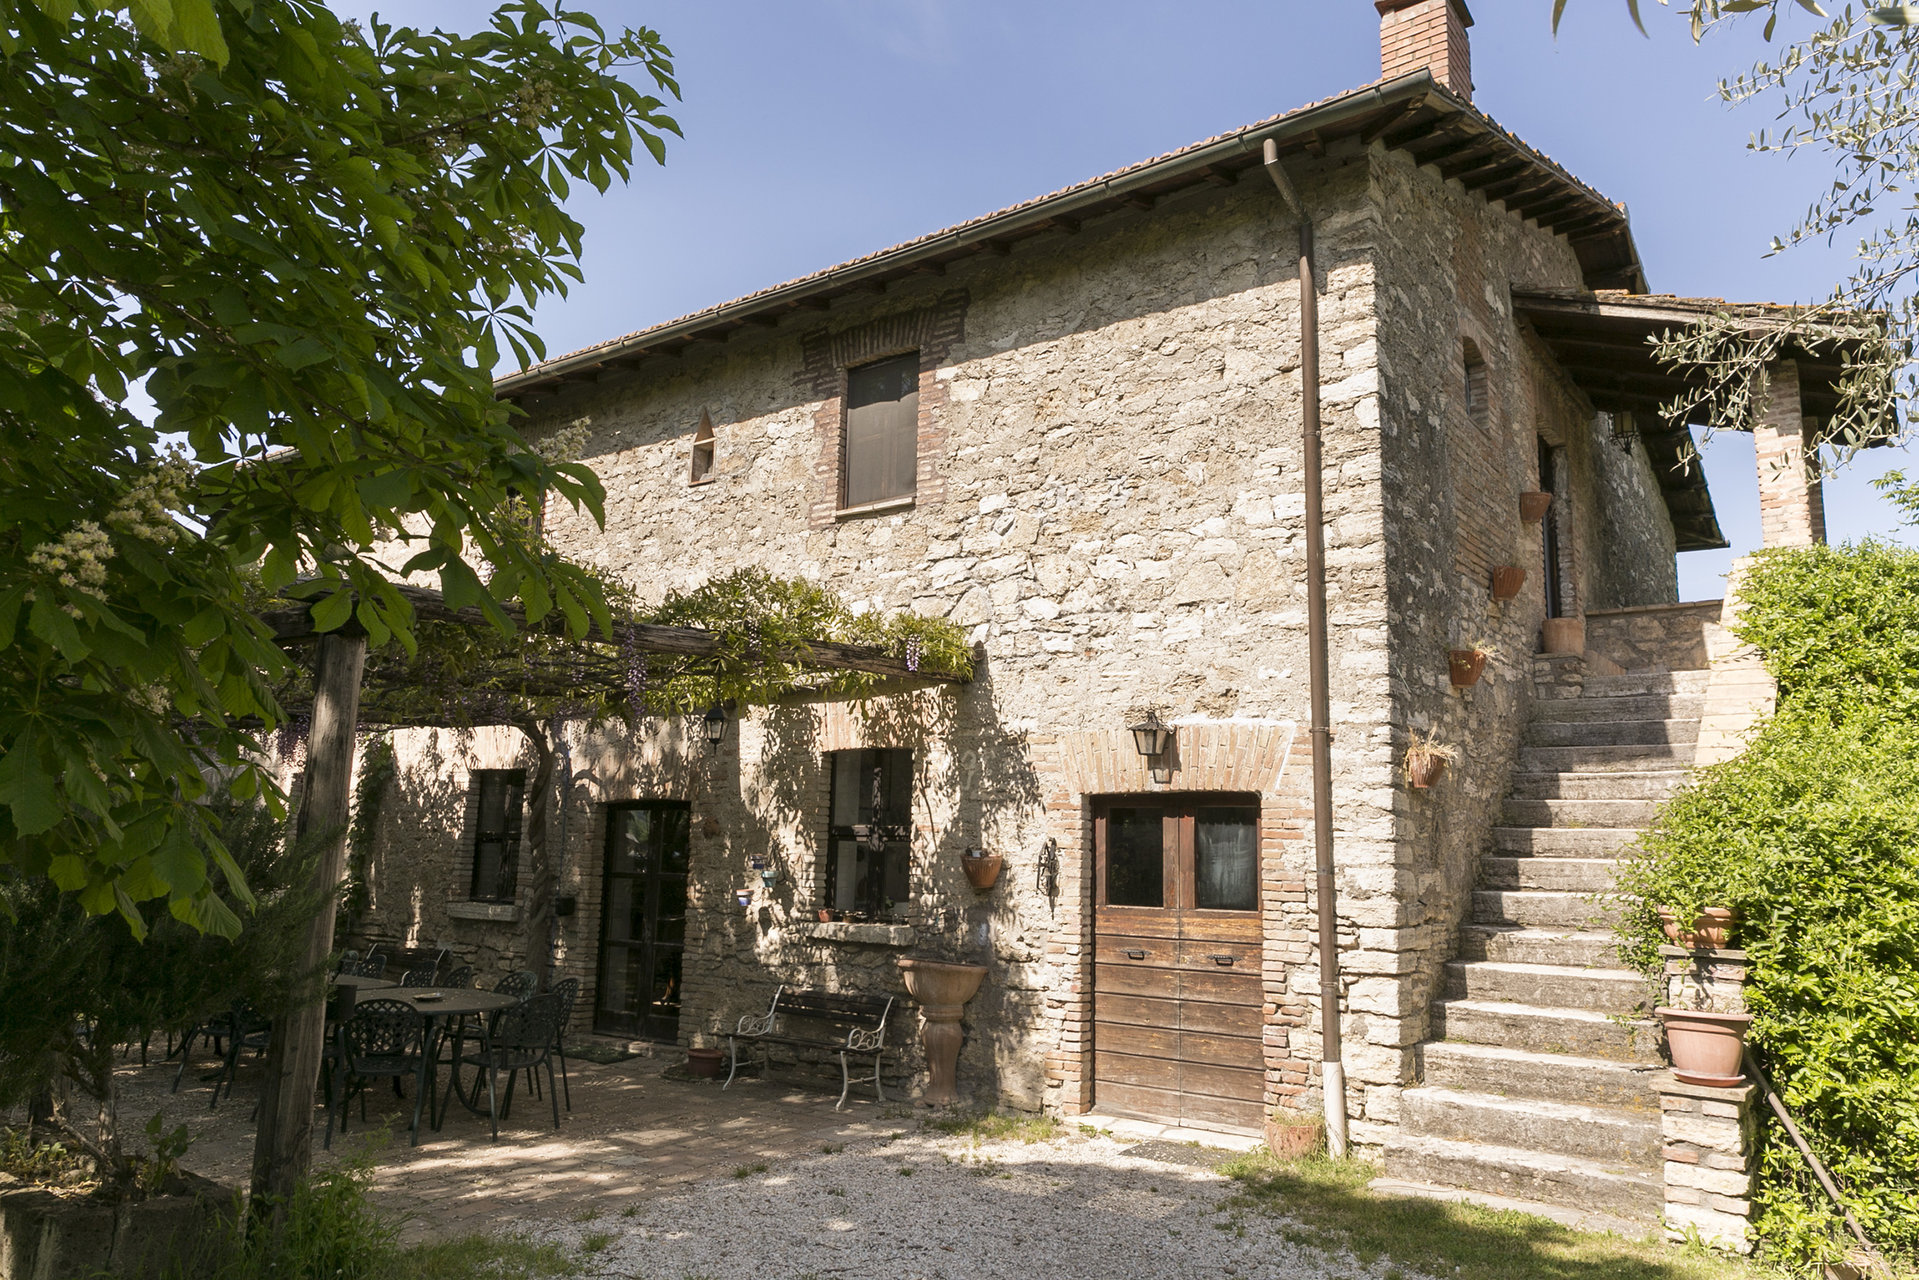 3 HISTORIC FARMHOUSES WITH LAND AND 2 SWIMMING POOLS | ORTE | TUSCIA